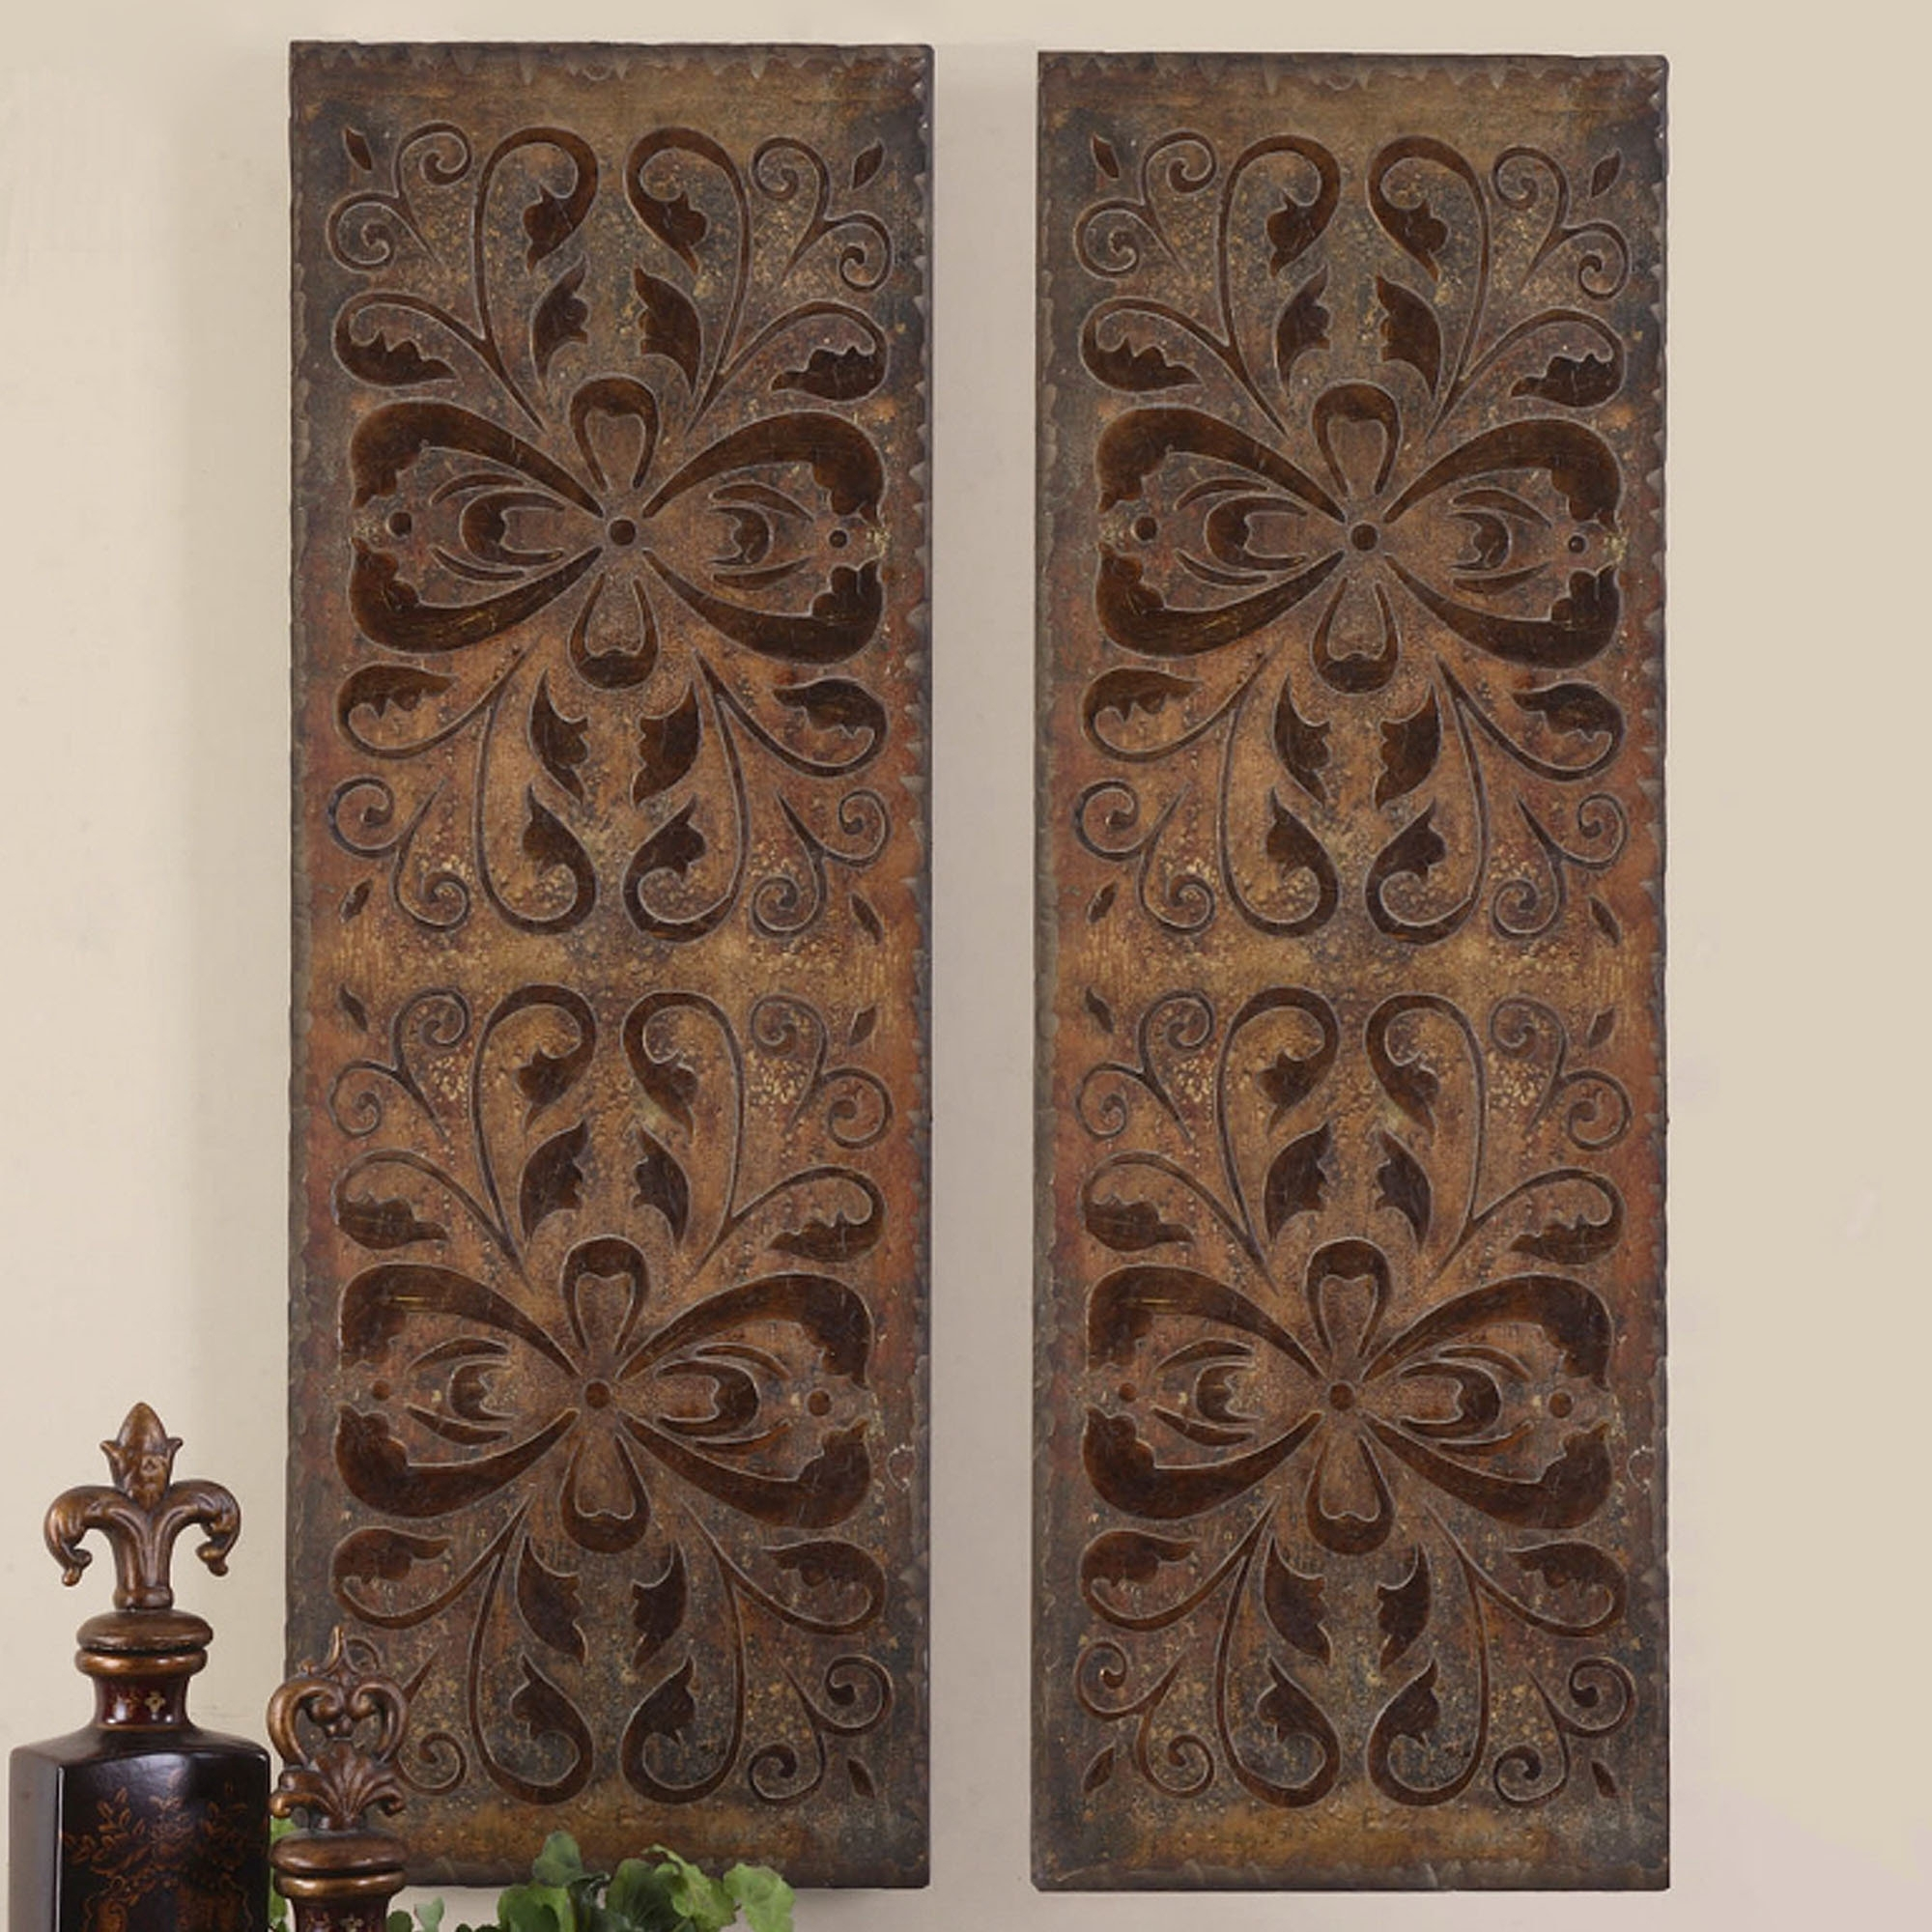 Distressed Wood Panel Wall Decor Wall Art Designs Wall Art Panels Within Most Recent Wall Art Panels (Gallery 4 of 20)